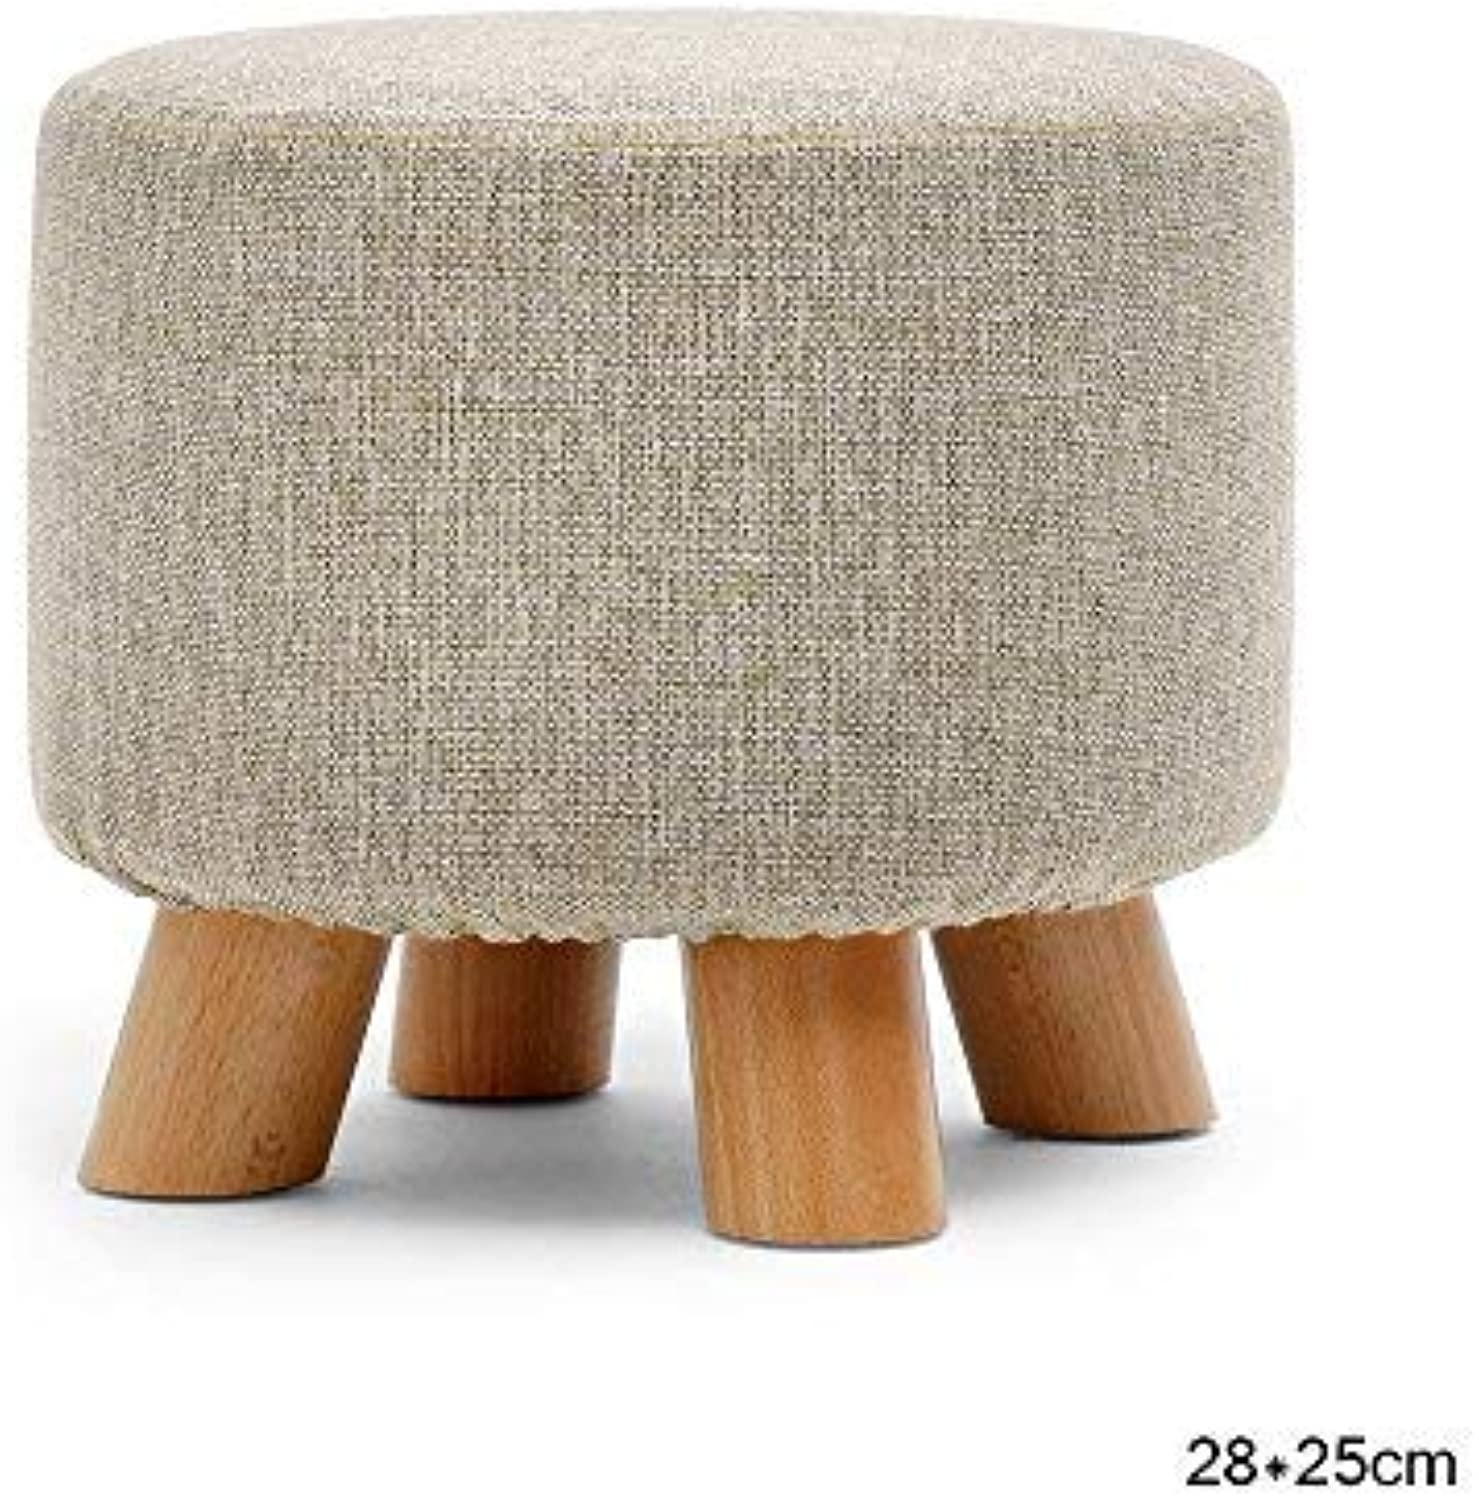 DEED Chair Stool - Round Upholstered Footstools Wood Legs Chair Linen Fabric Cover Adult Home Stool